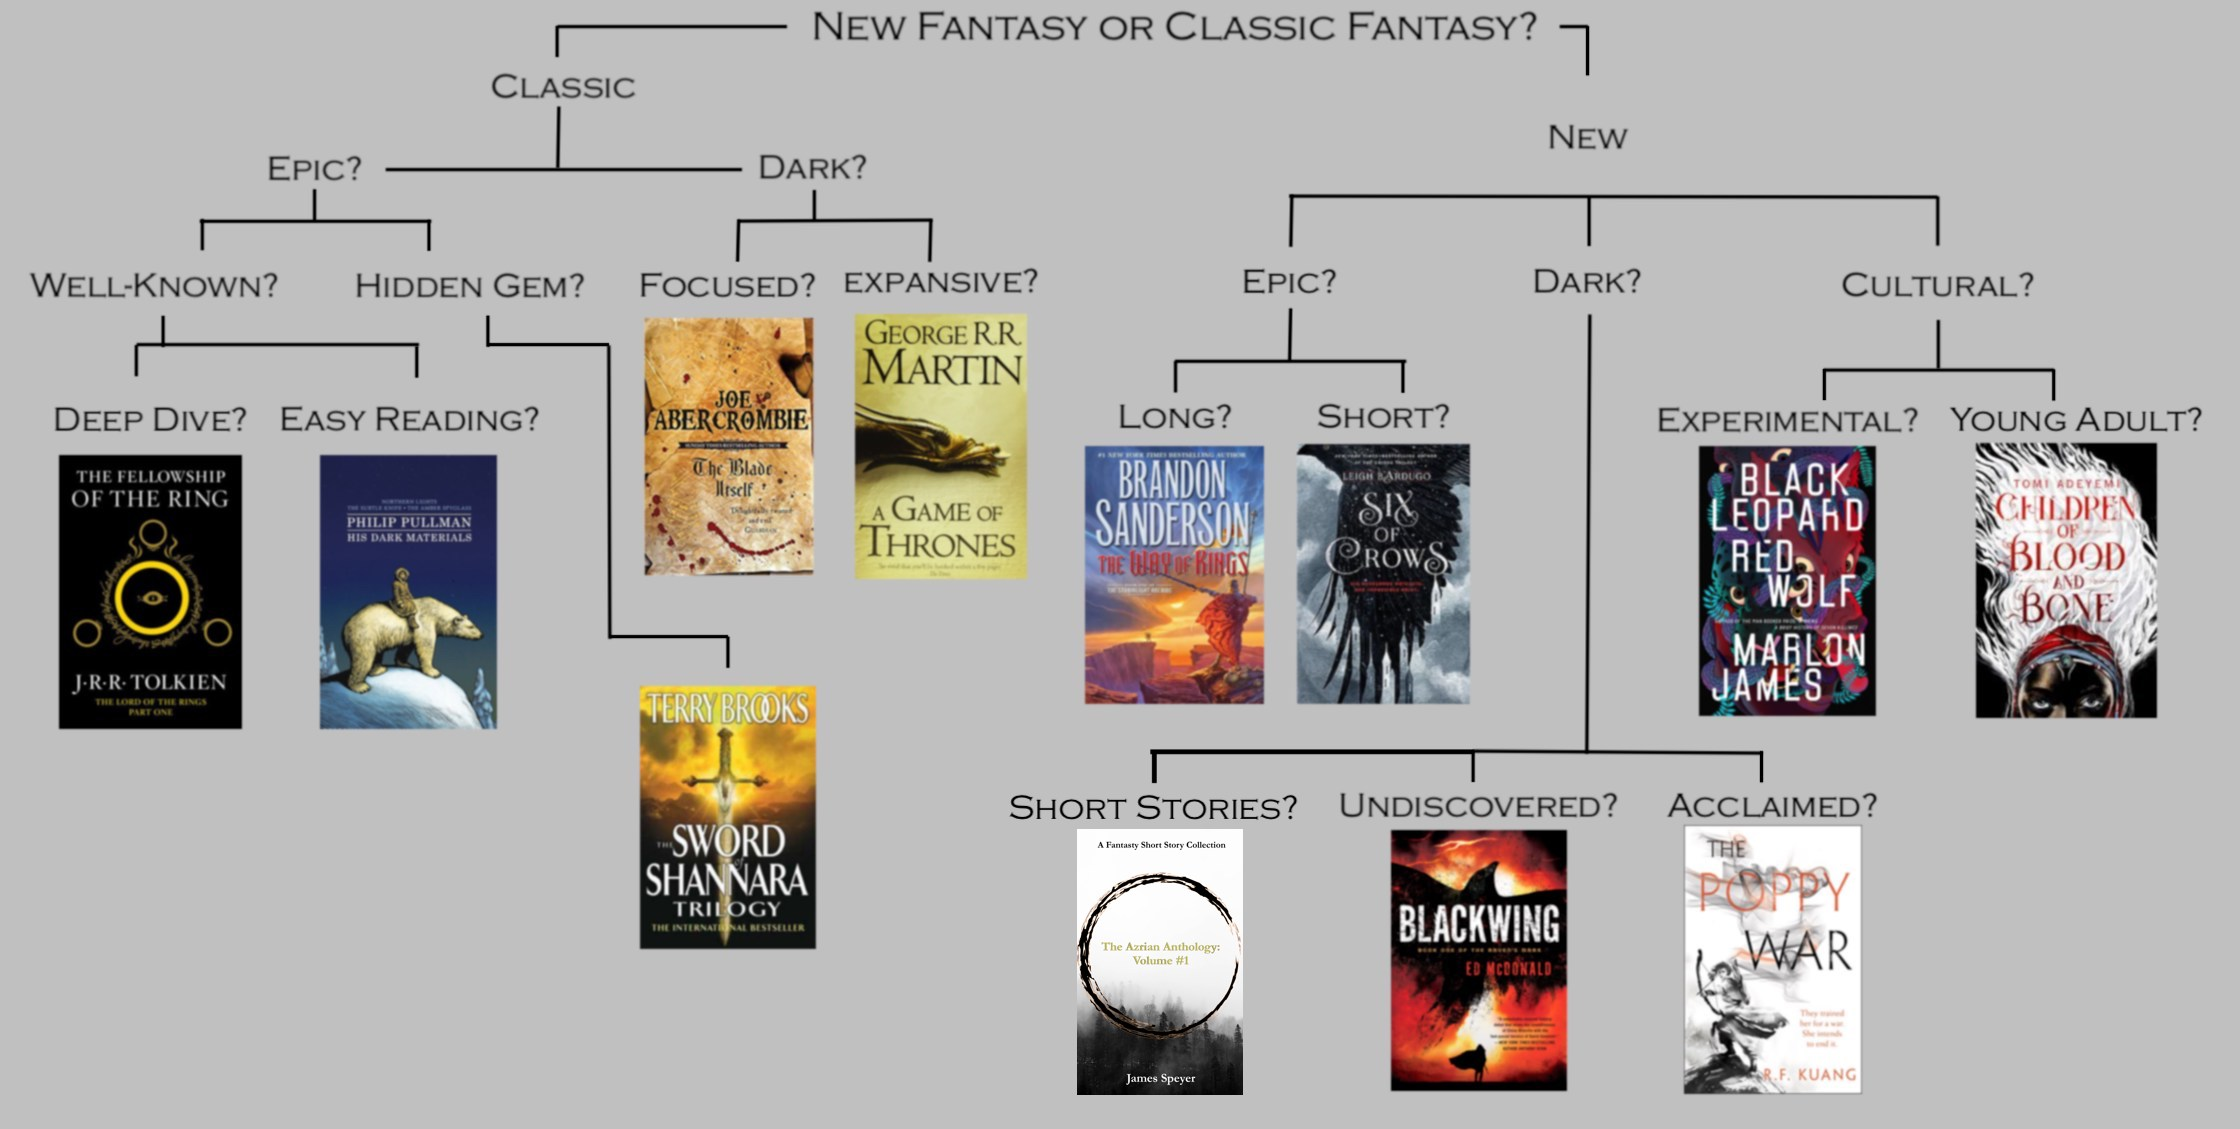 Which fantasy should I read next?